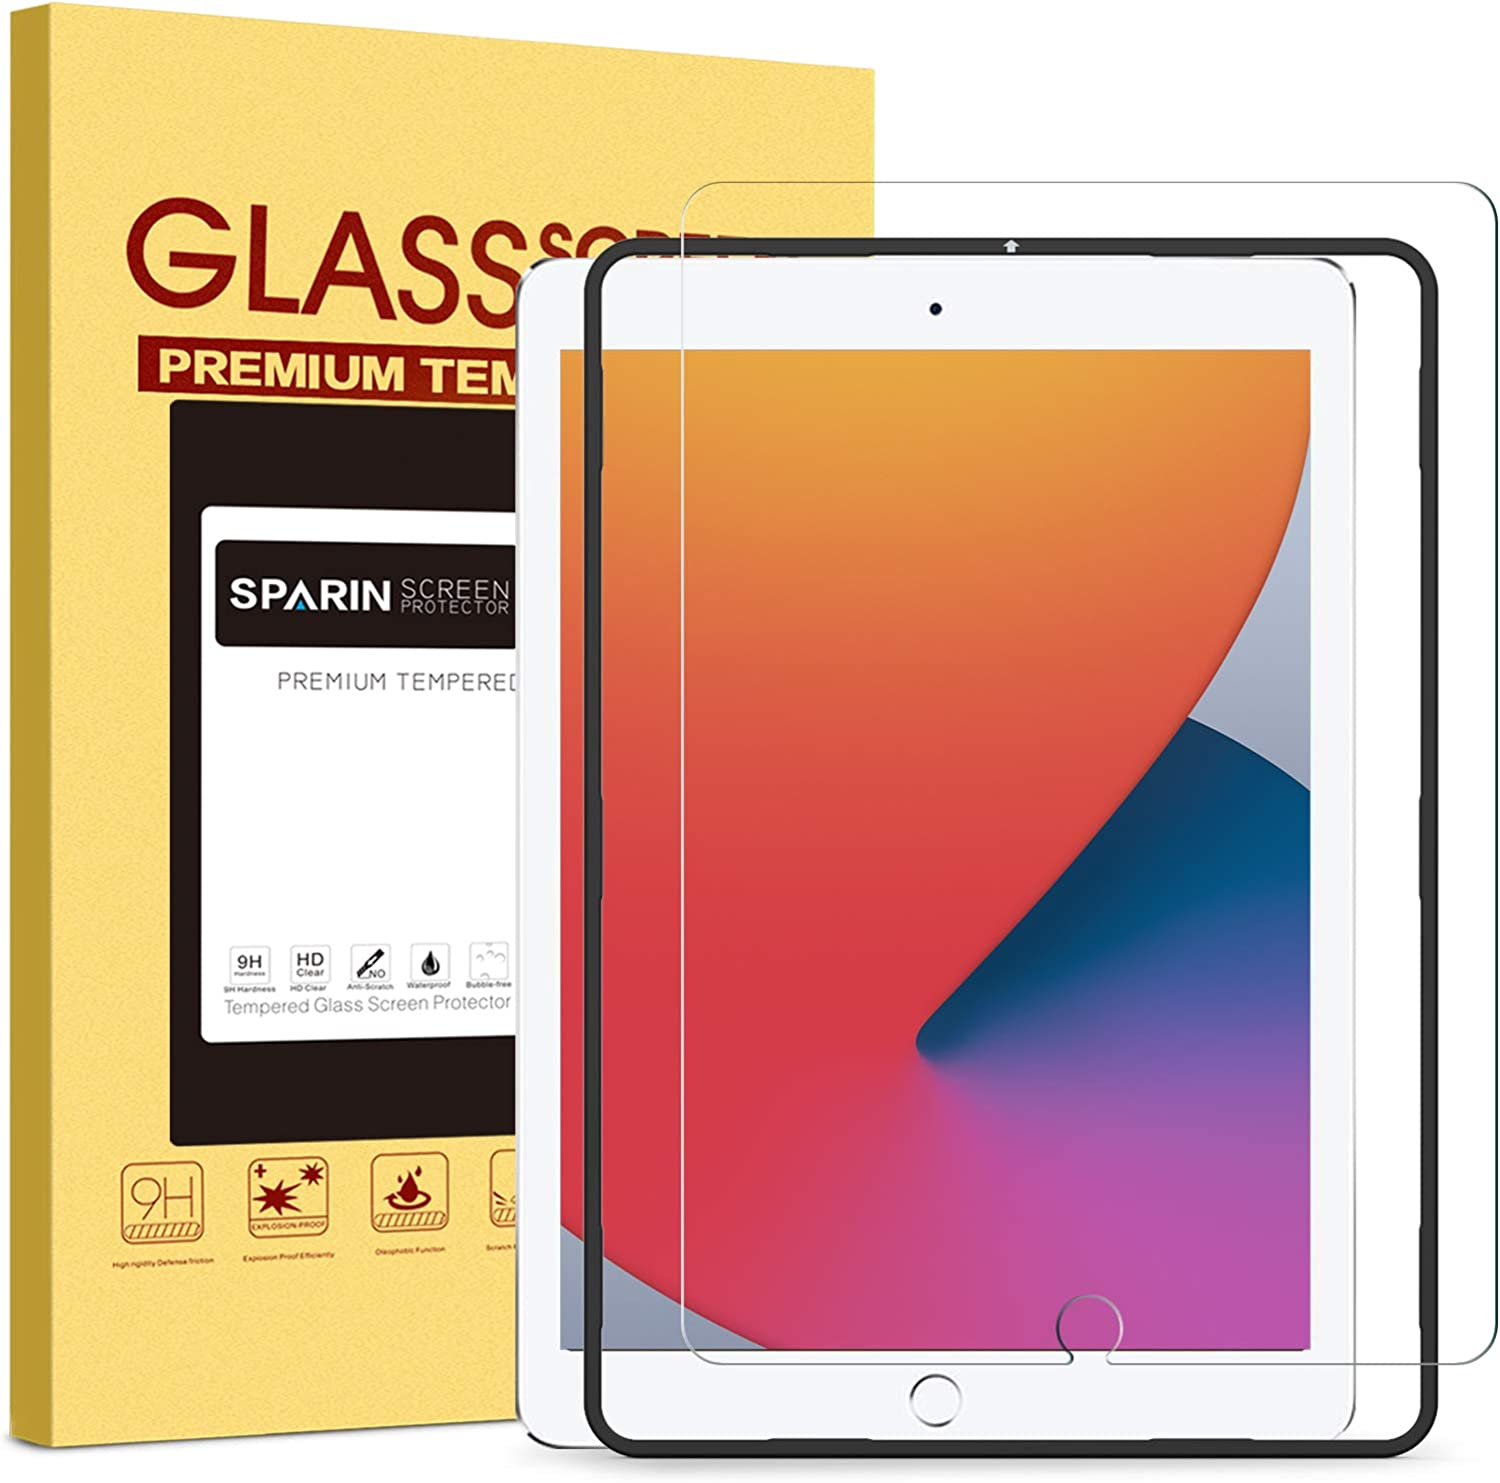 SPARIN Screen Protector for iPad 8th Generation 10.2 Inch 2020 Released and iPad 7th Gen 10.2 2019 Model with Alignment Frame/ Apple Pencil Compatible